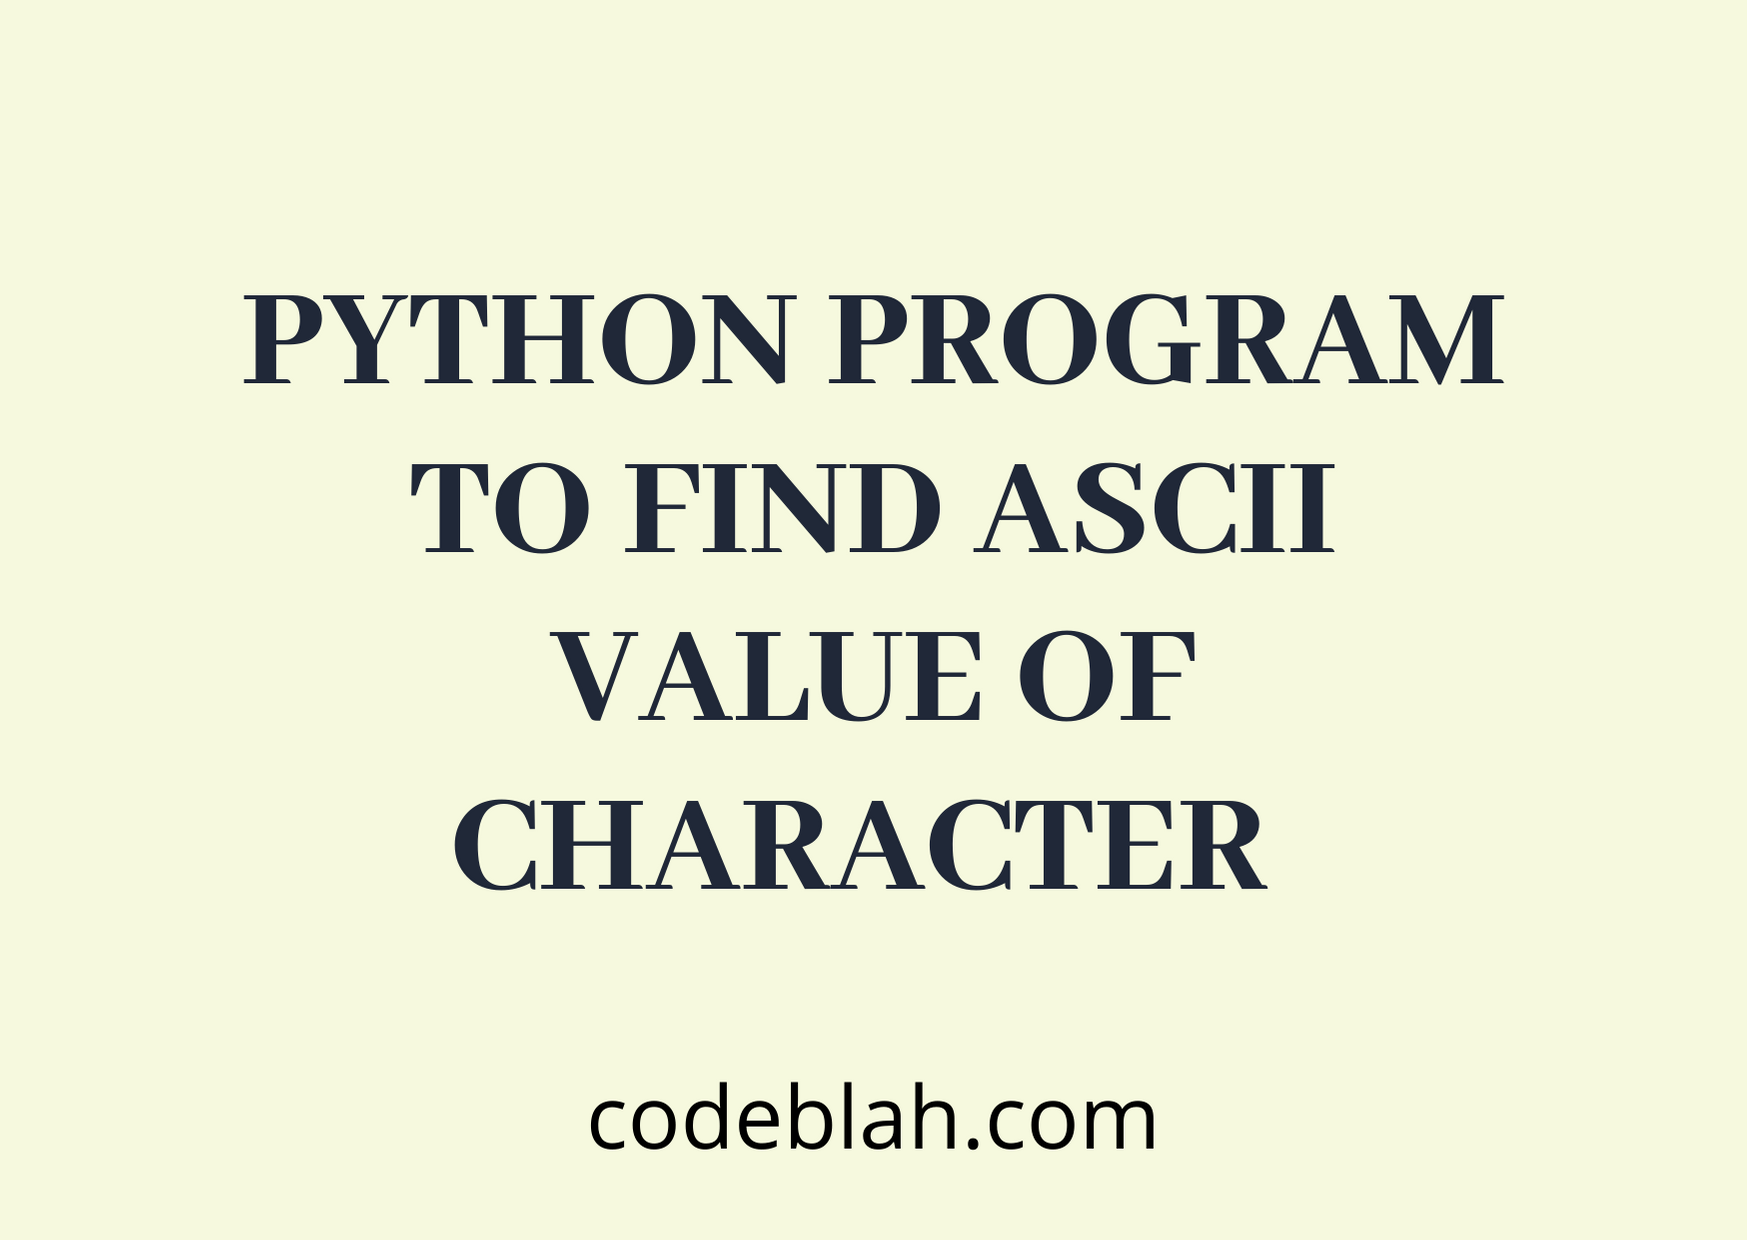 Python Program to Find ASCII Value of Character